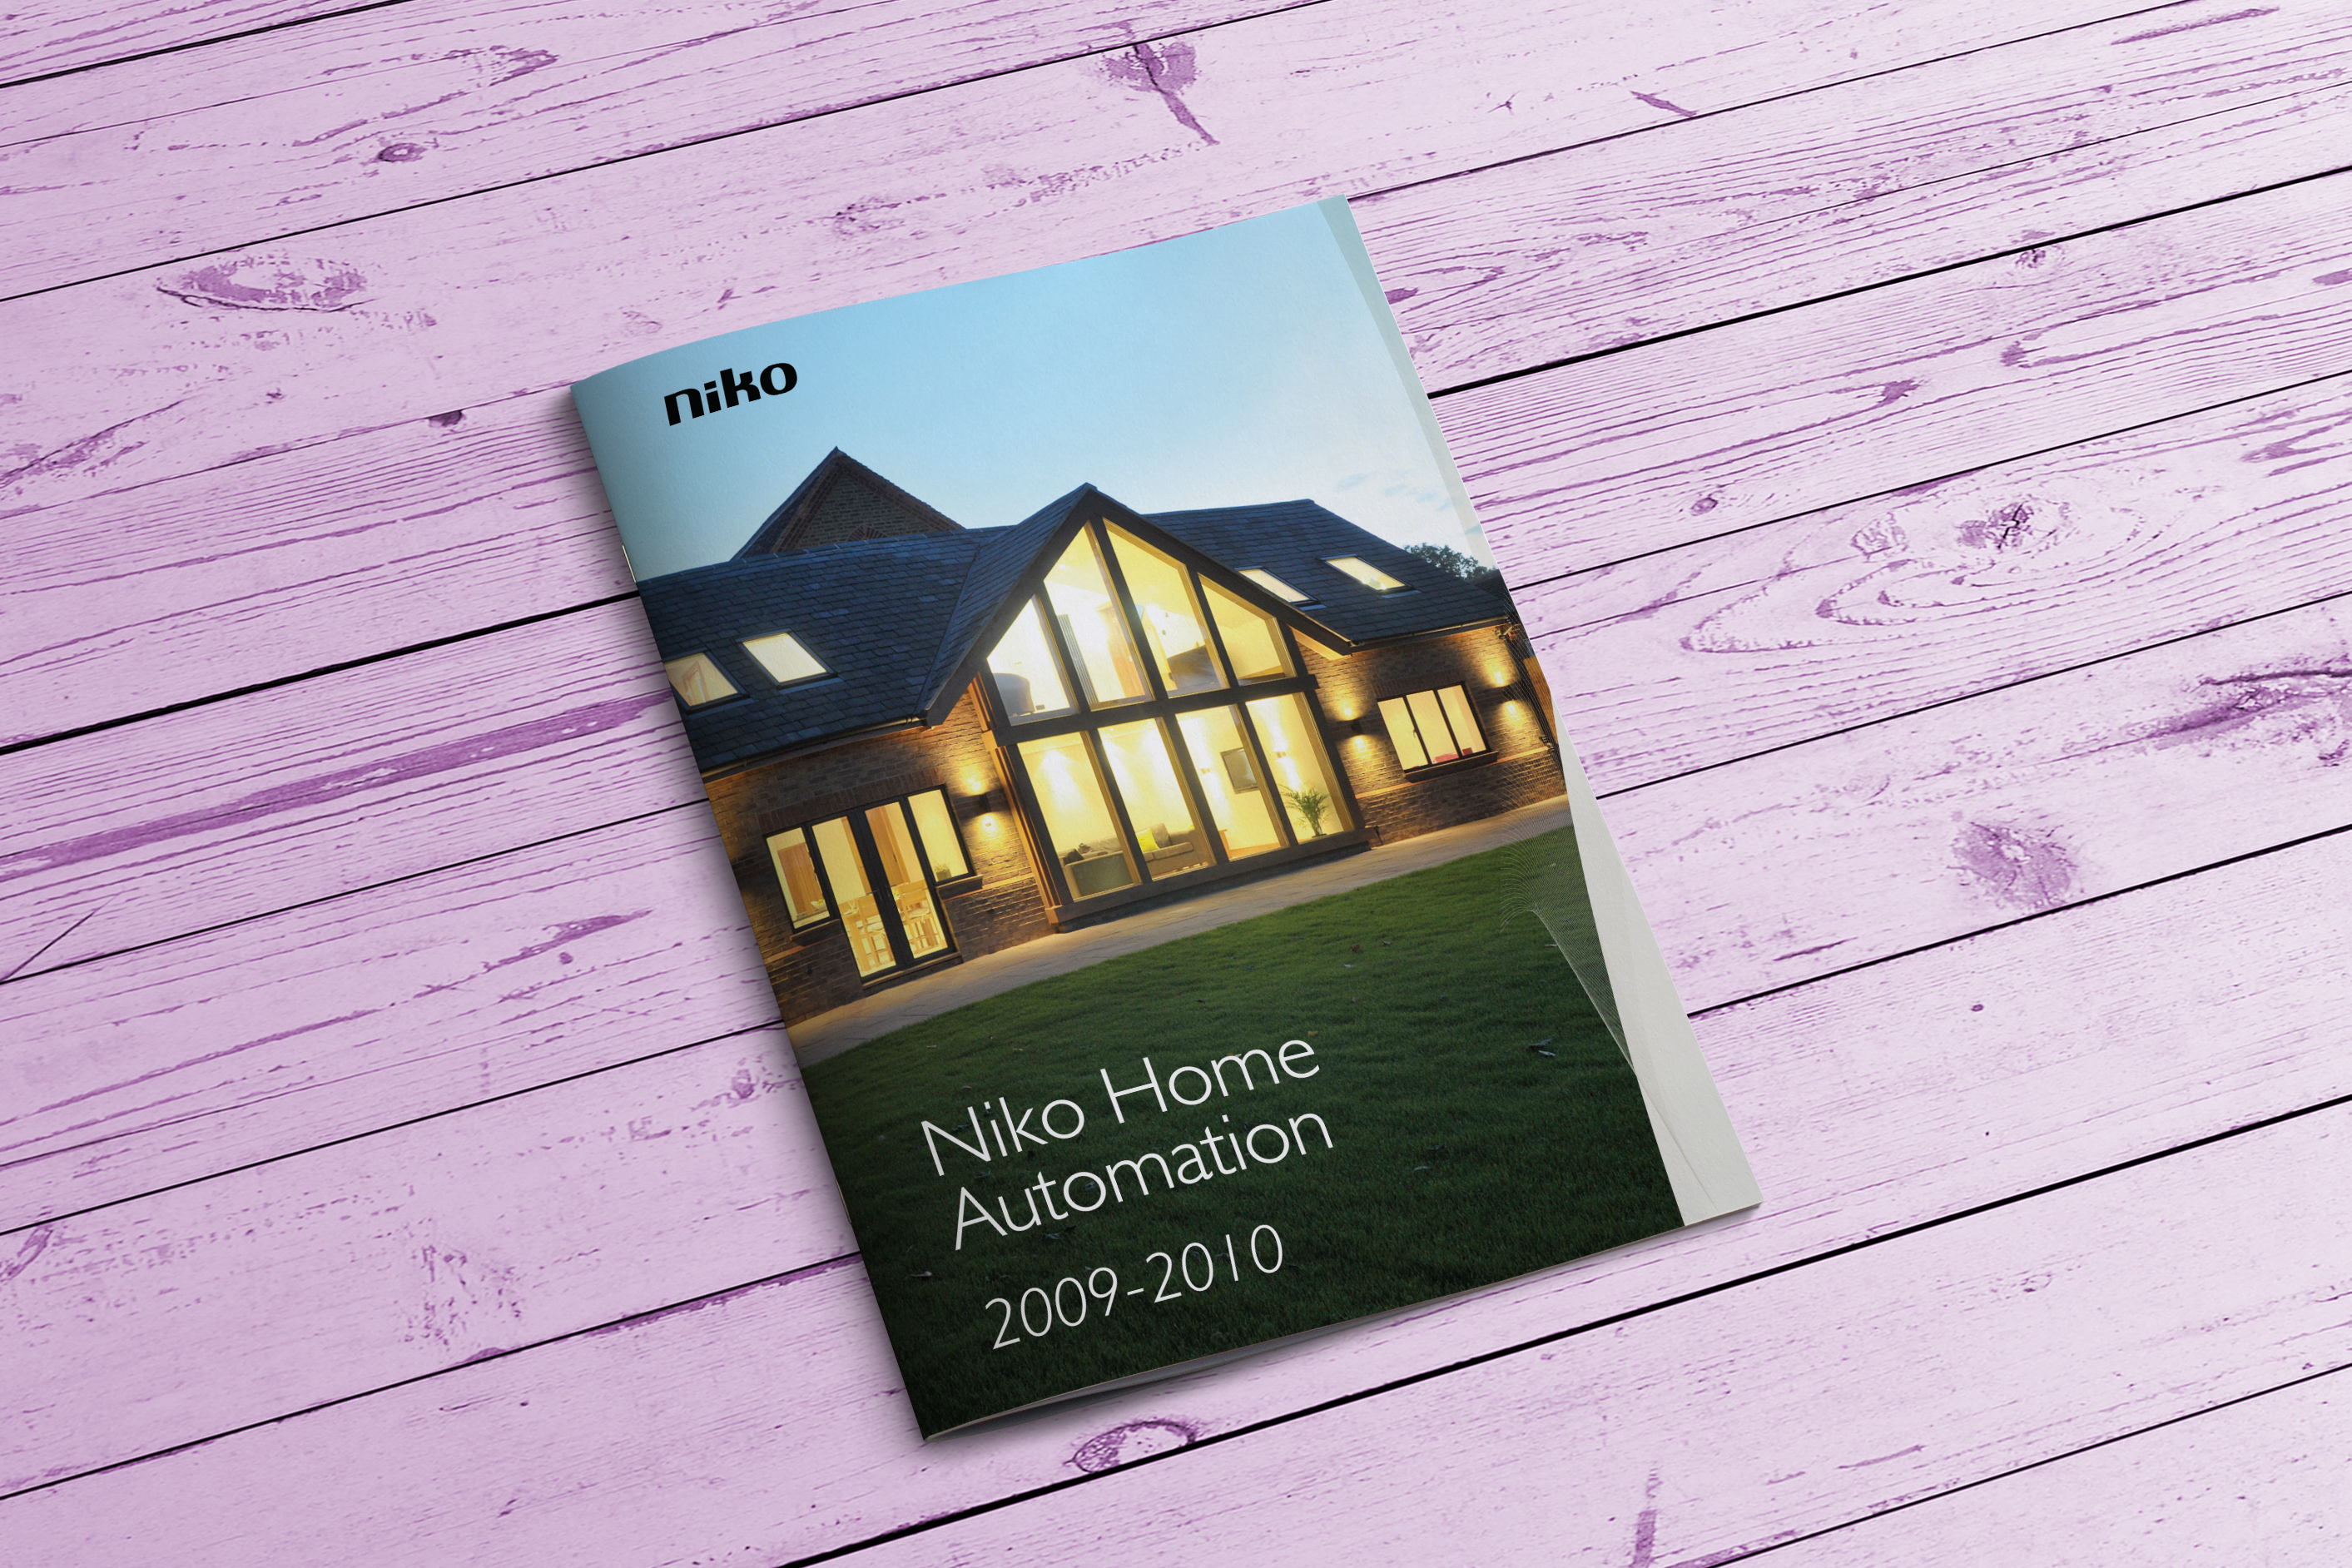 Niko Home Automation catalogue